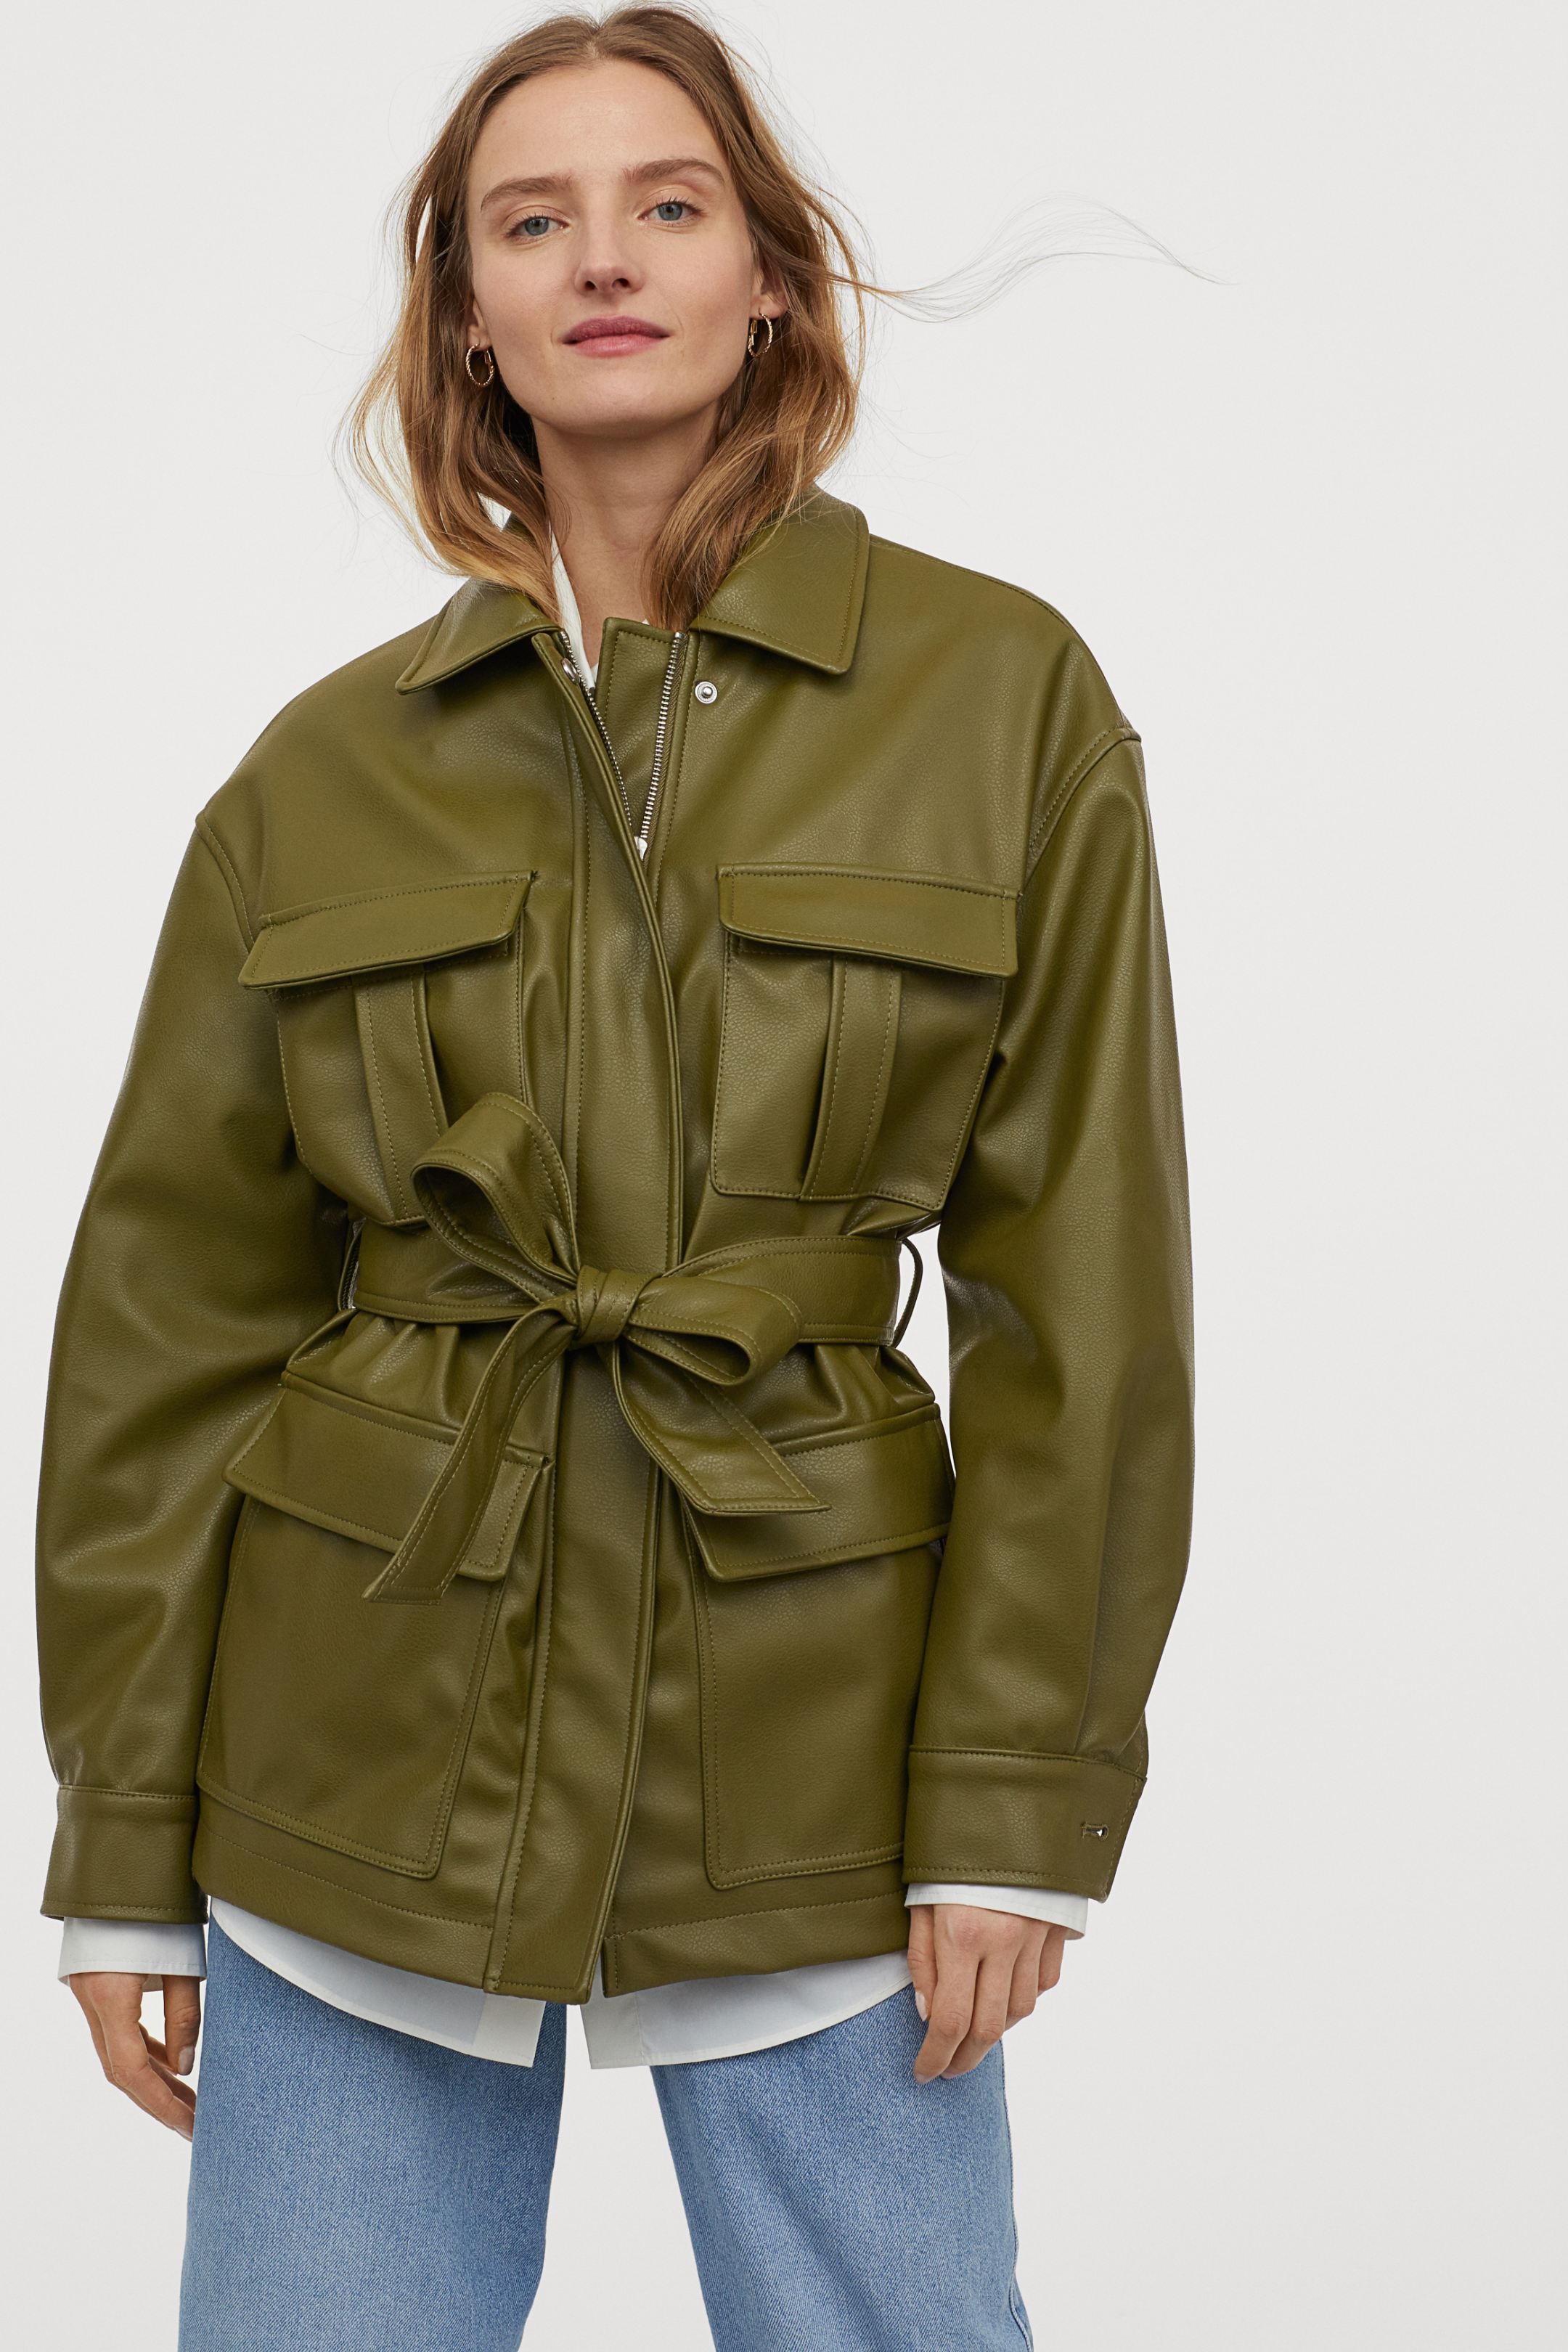 hm-faux-leather-jacket-olive-green